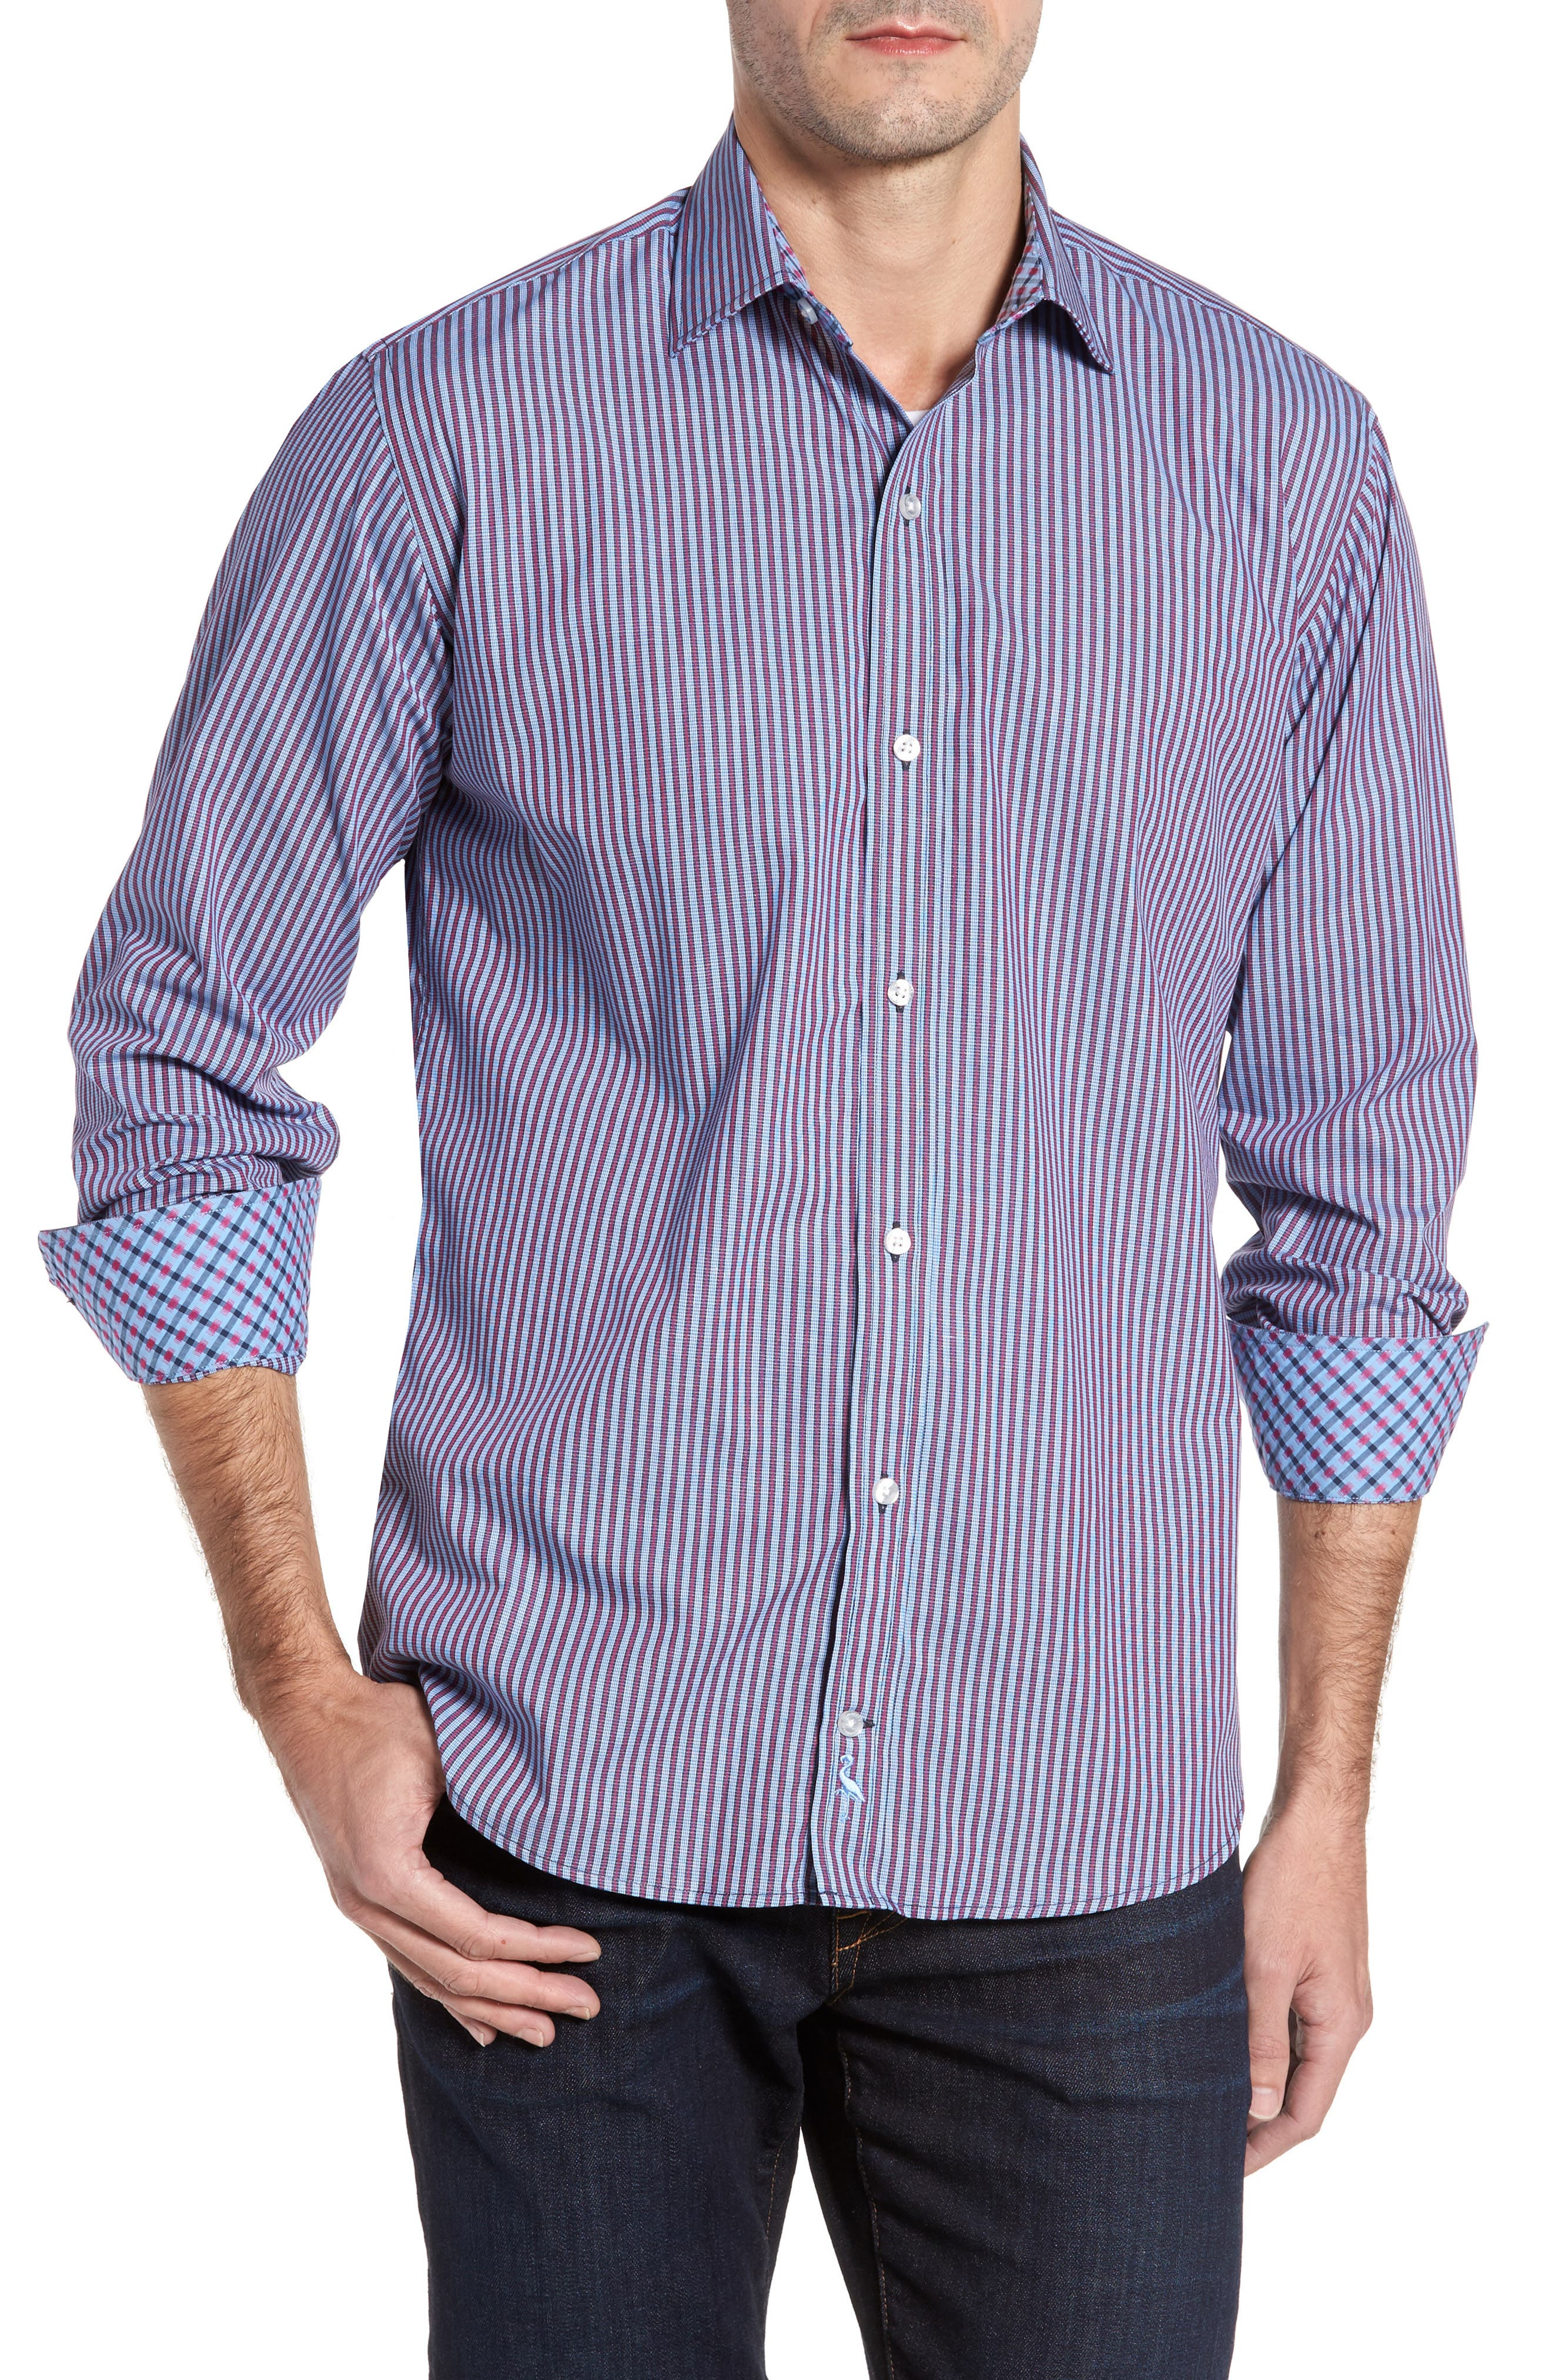 Brownfields Striped Sport Shirt,                             Main thumbnail 1, color,                             617